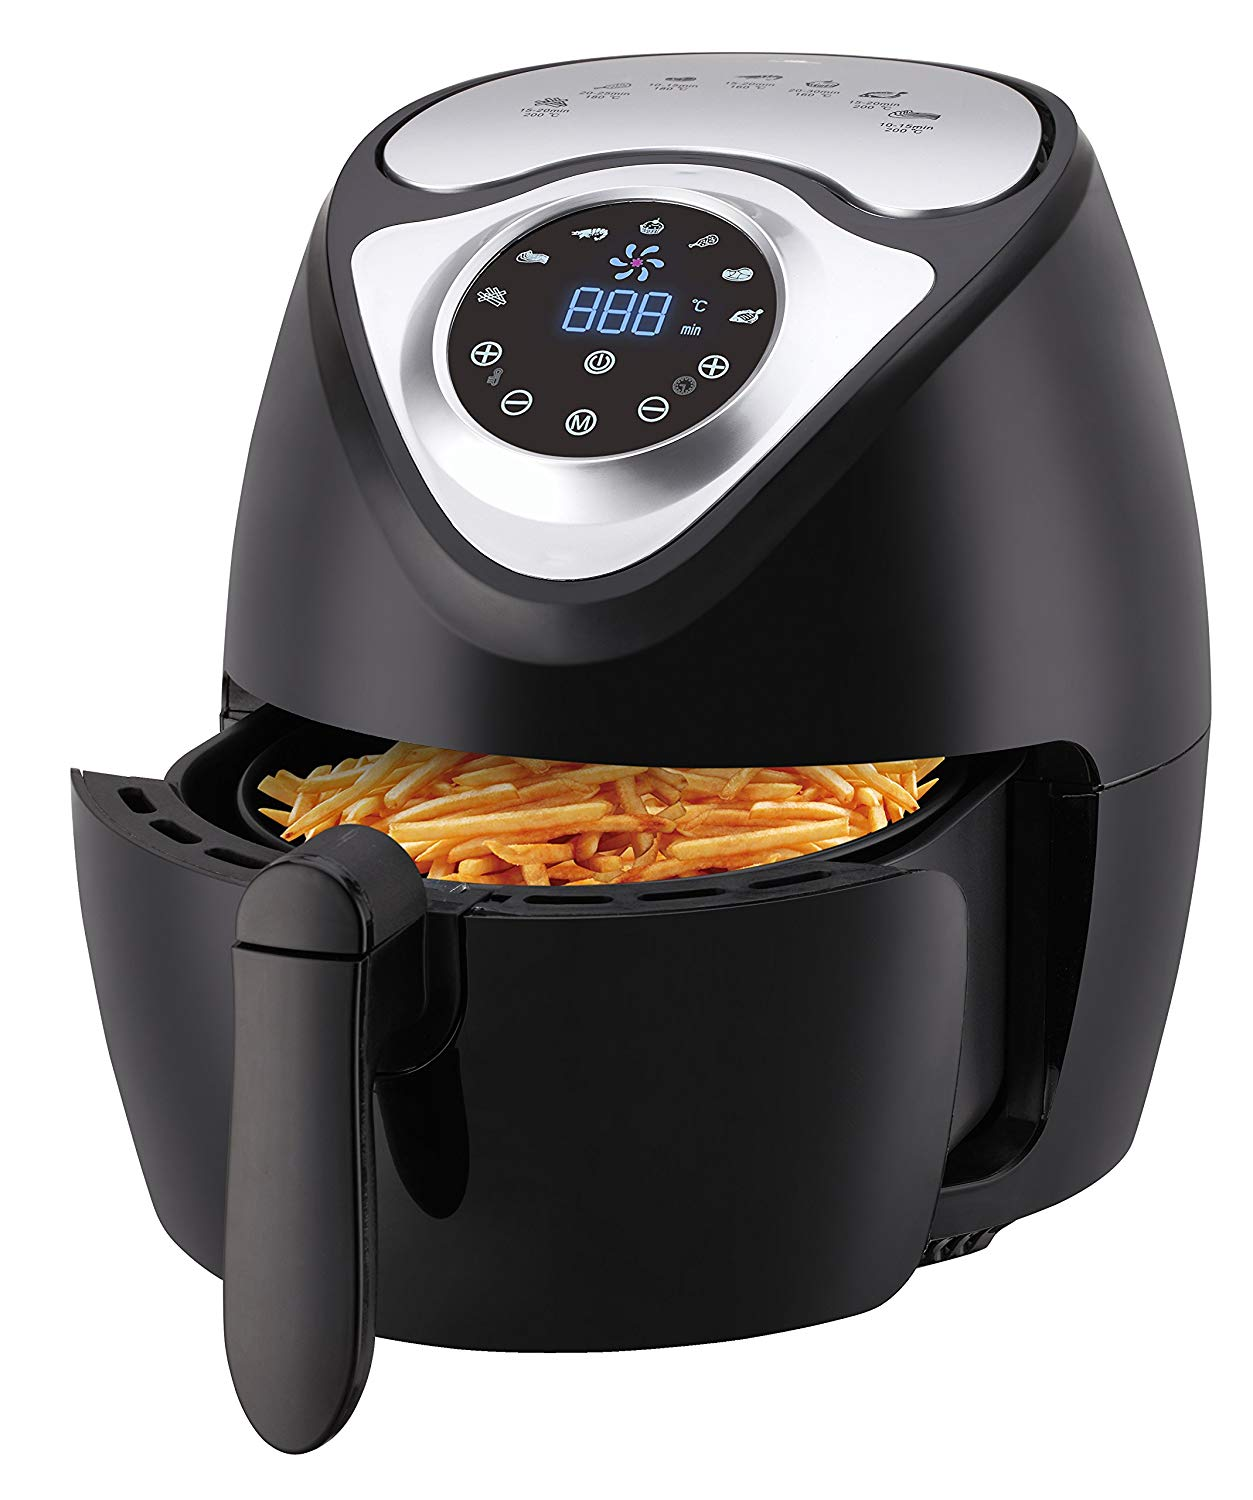 Manufactuer sale Multi-function Electric Air Fryer, Fry Health with Less Fat, 1300W with Digital Screen Control, Black